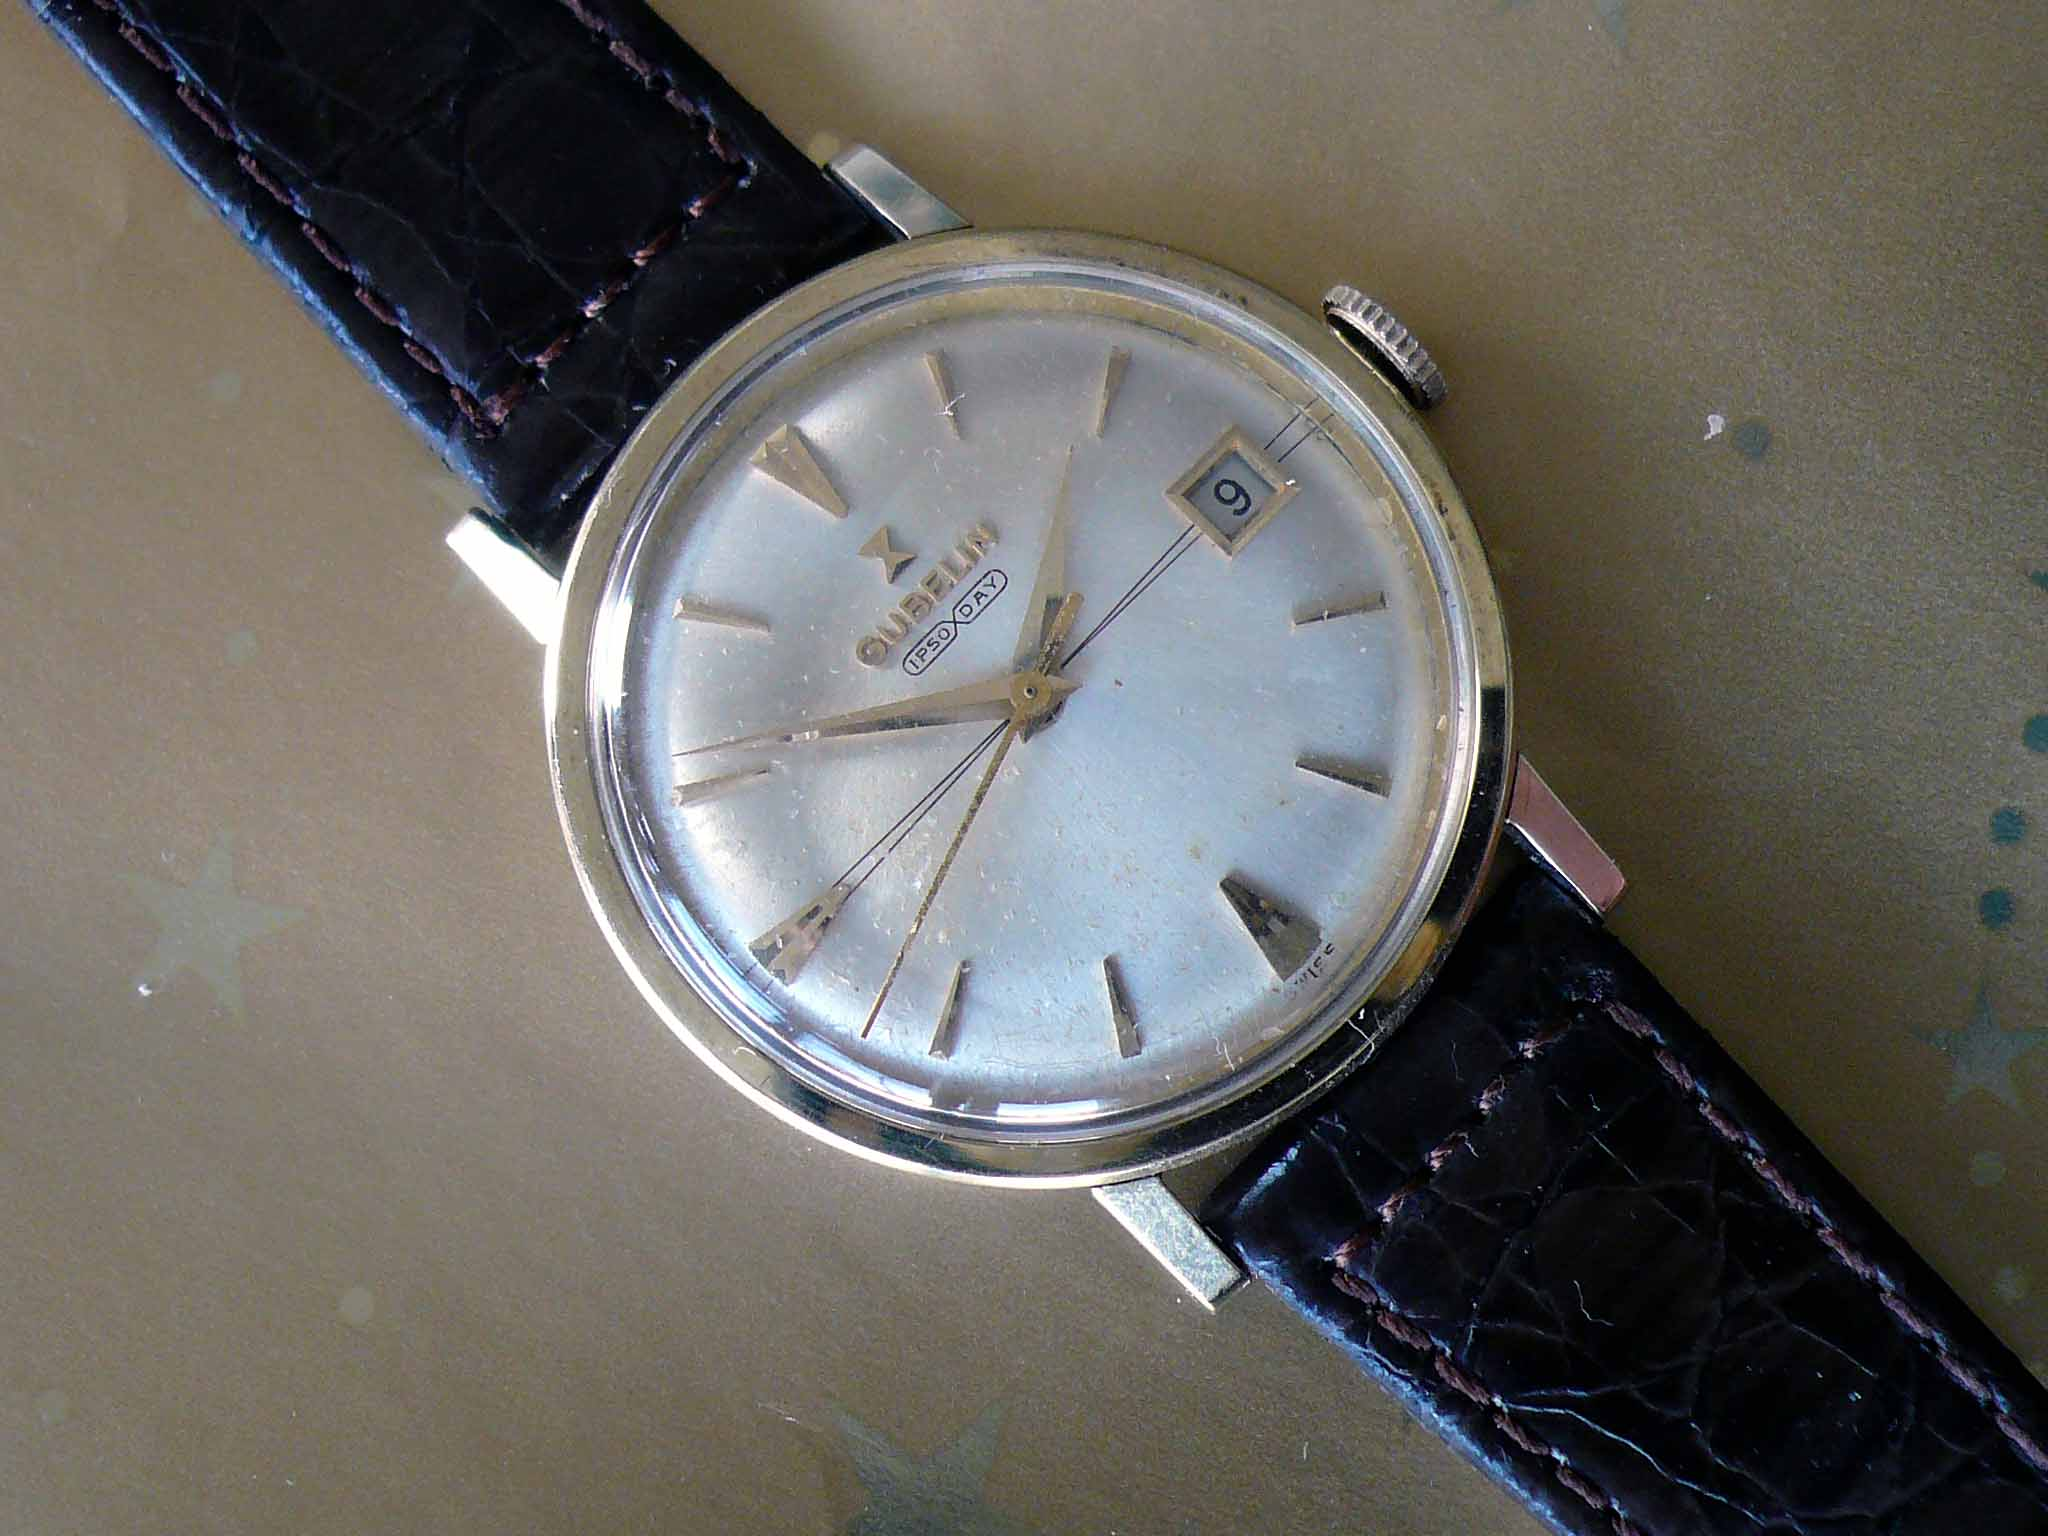 Peter Irniger 's Vintage Watches: Gubelin Ipso-Day Automatic